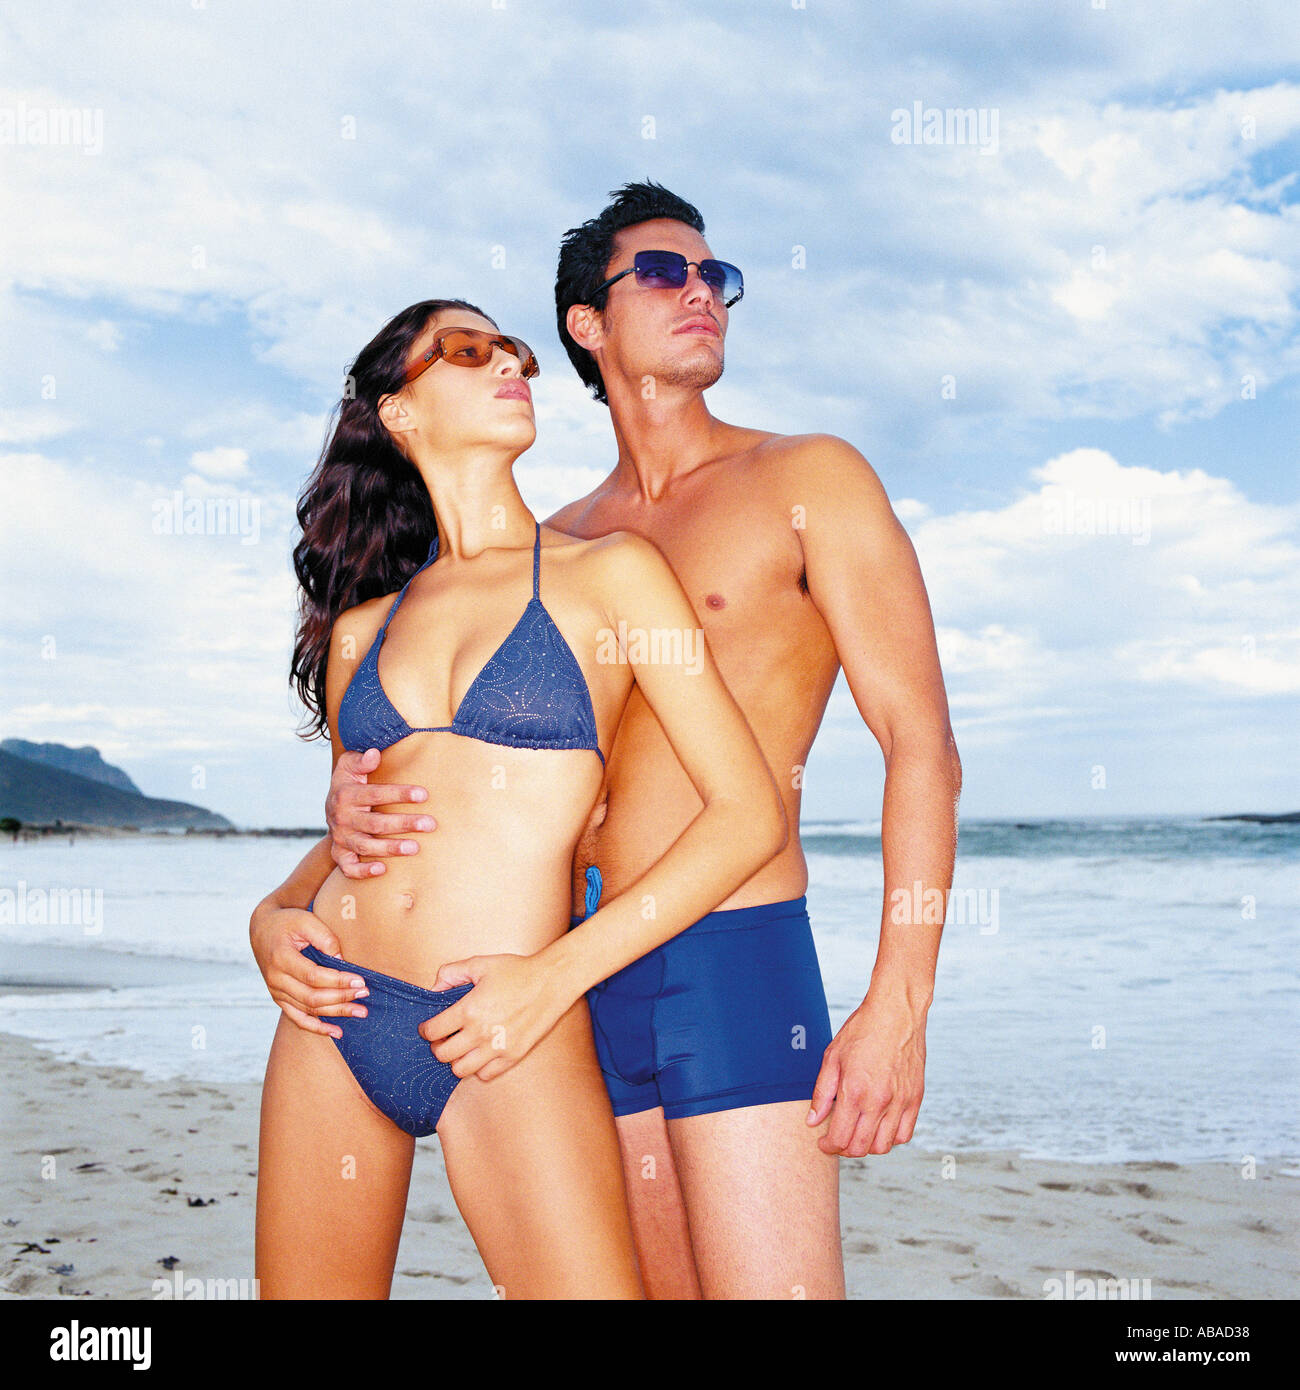 Man and woman on beach - Stock Image